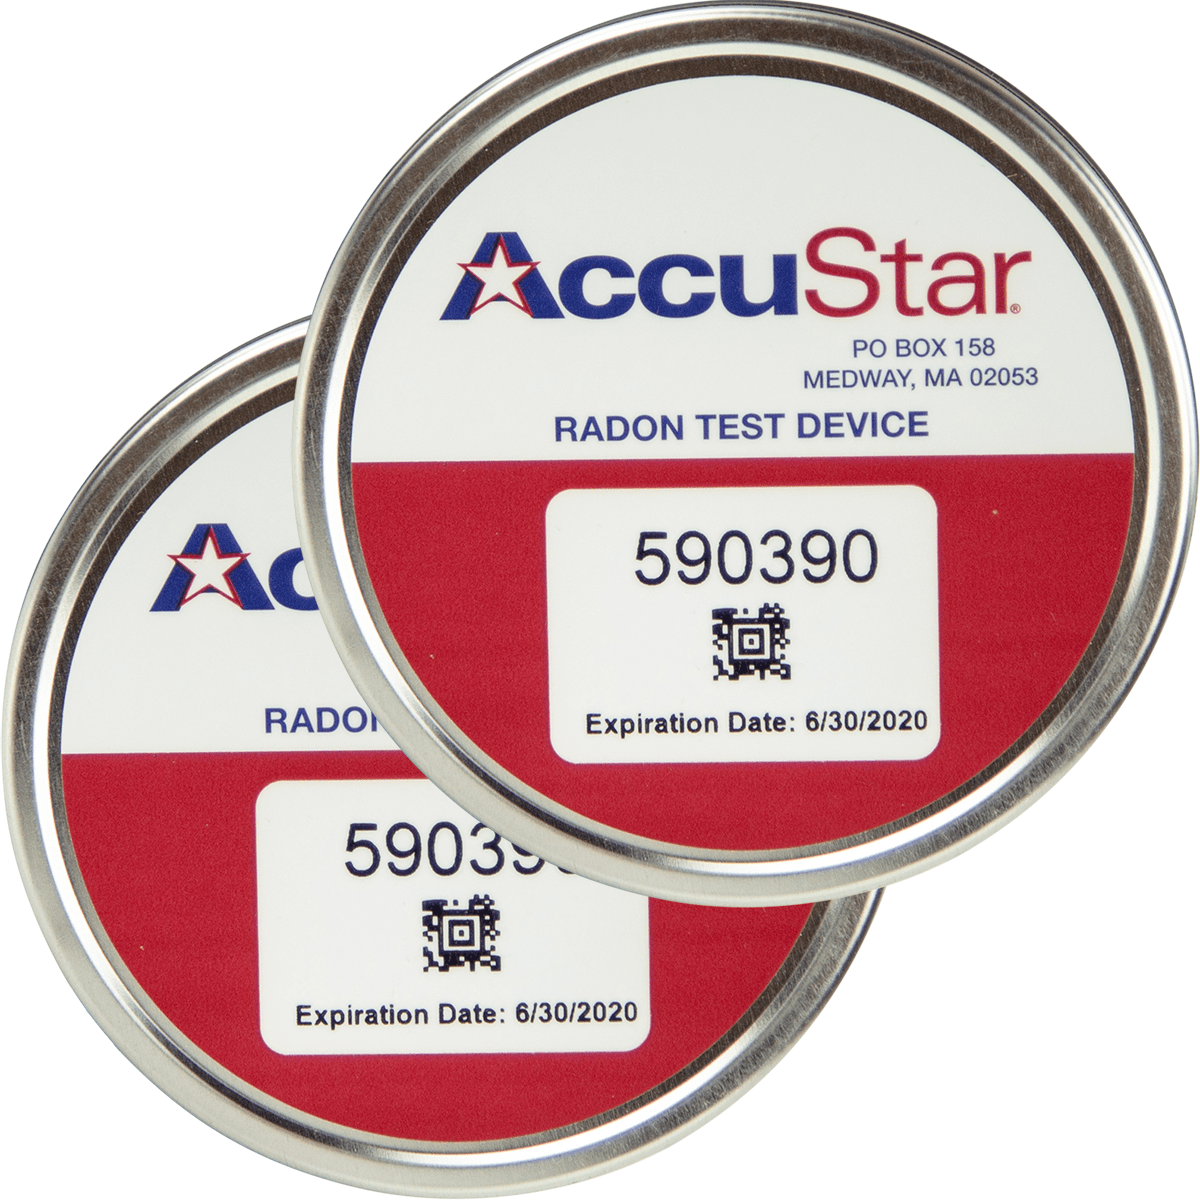 Accustar Picocan 400 Activated Charcoal Canisters - Double